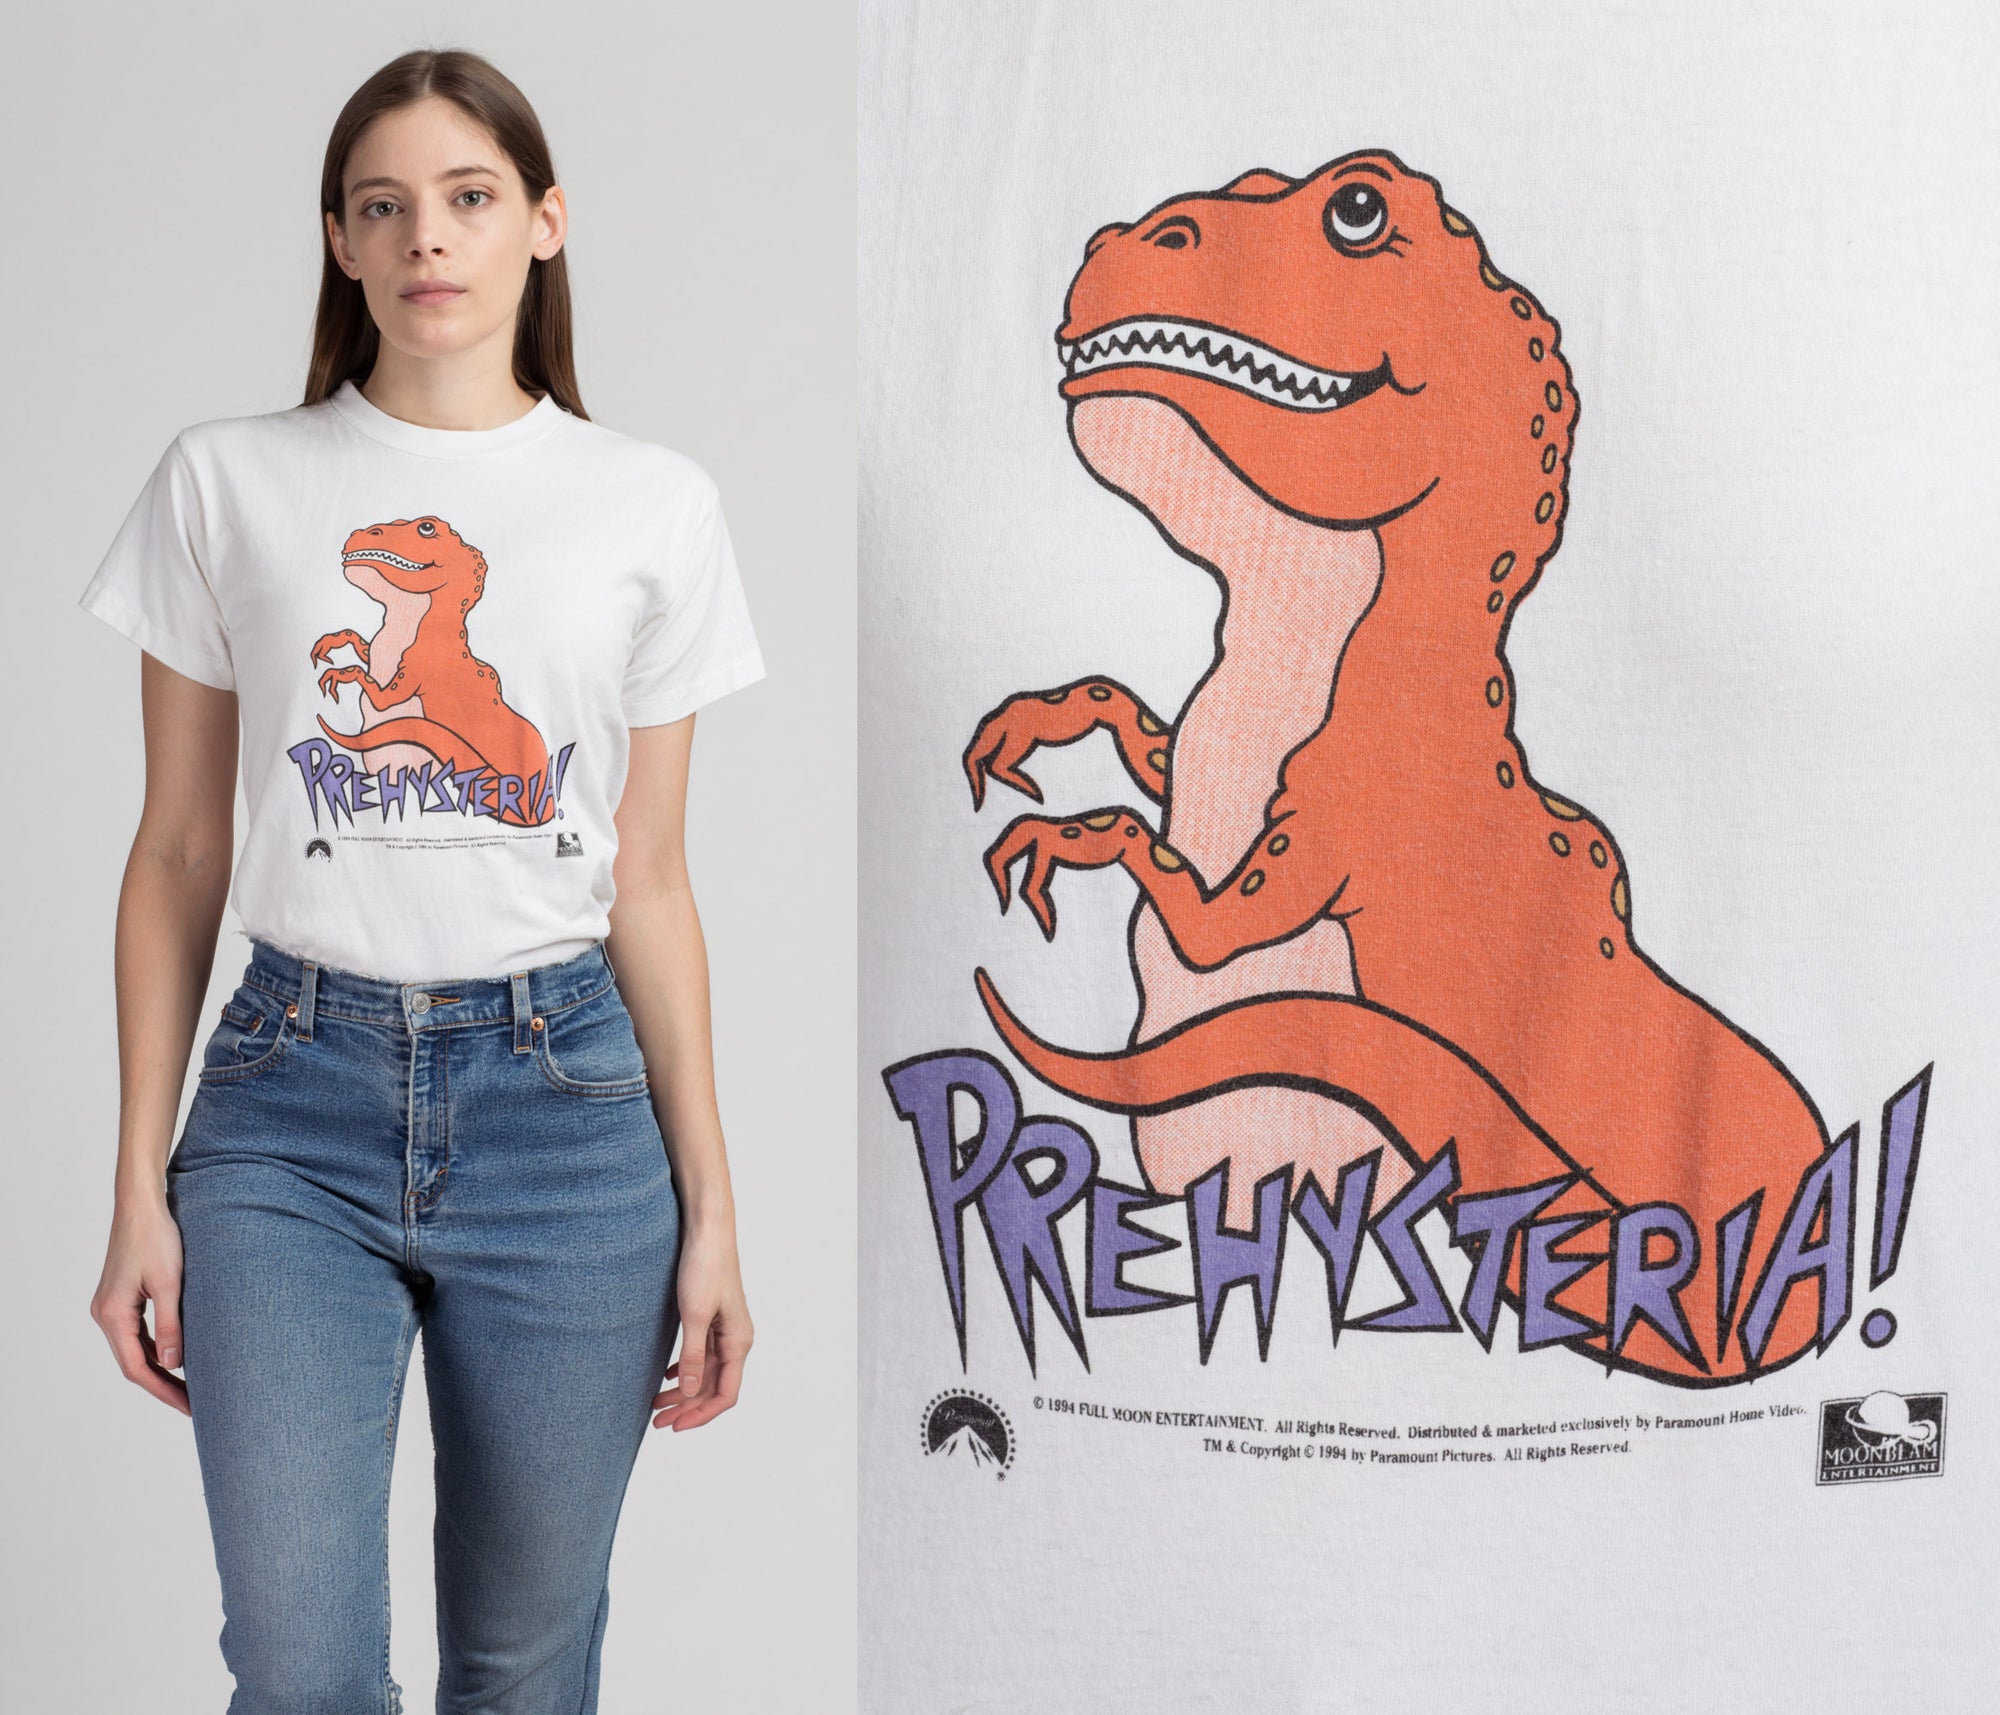 90s Prehysteria! Dinosaur T Shirt - Extra Small | Vintage White Cropped Graphic Movie Tee